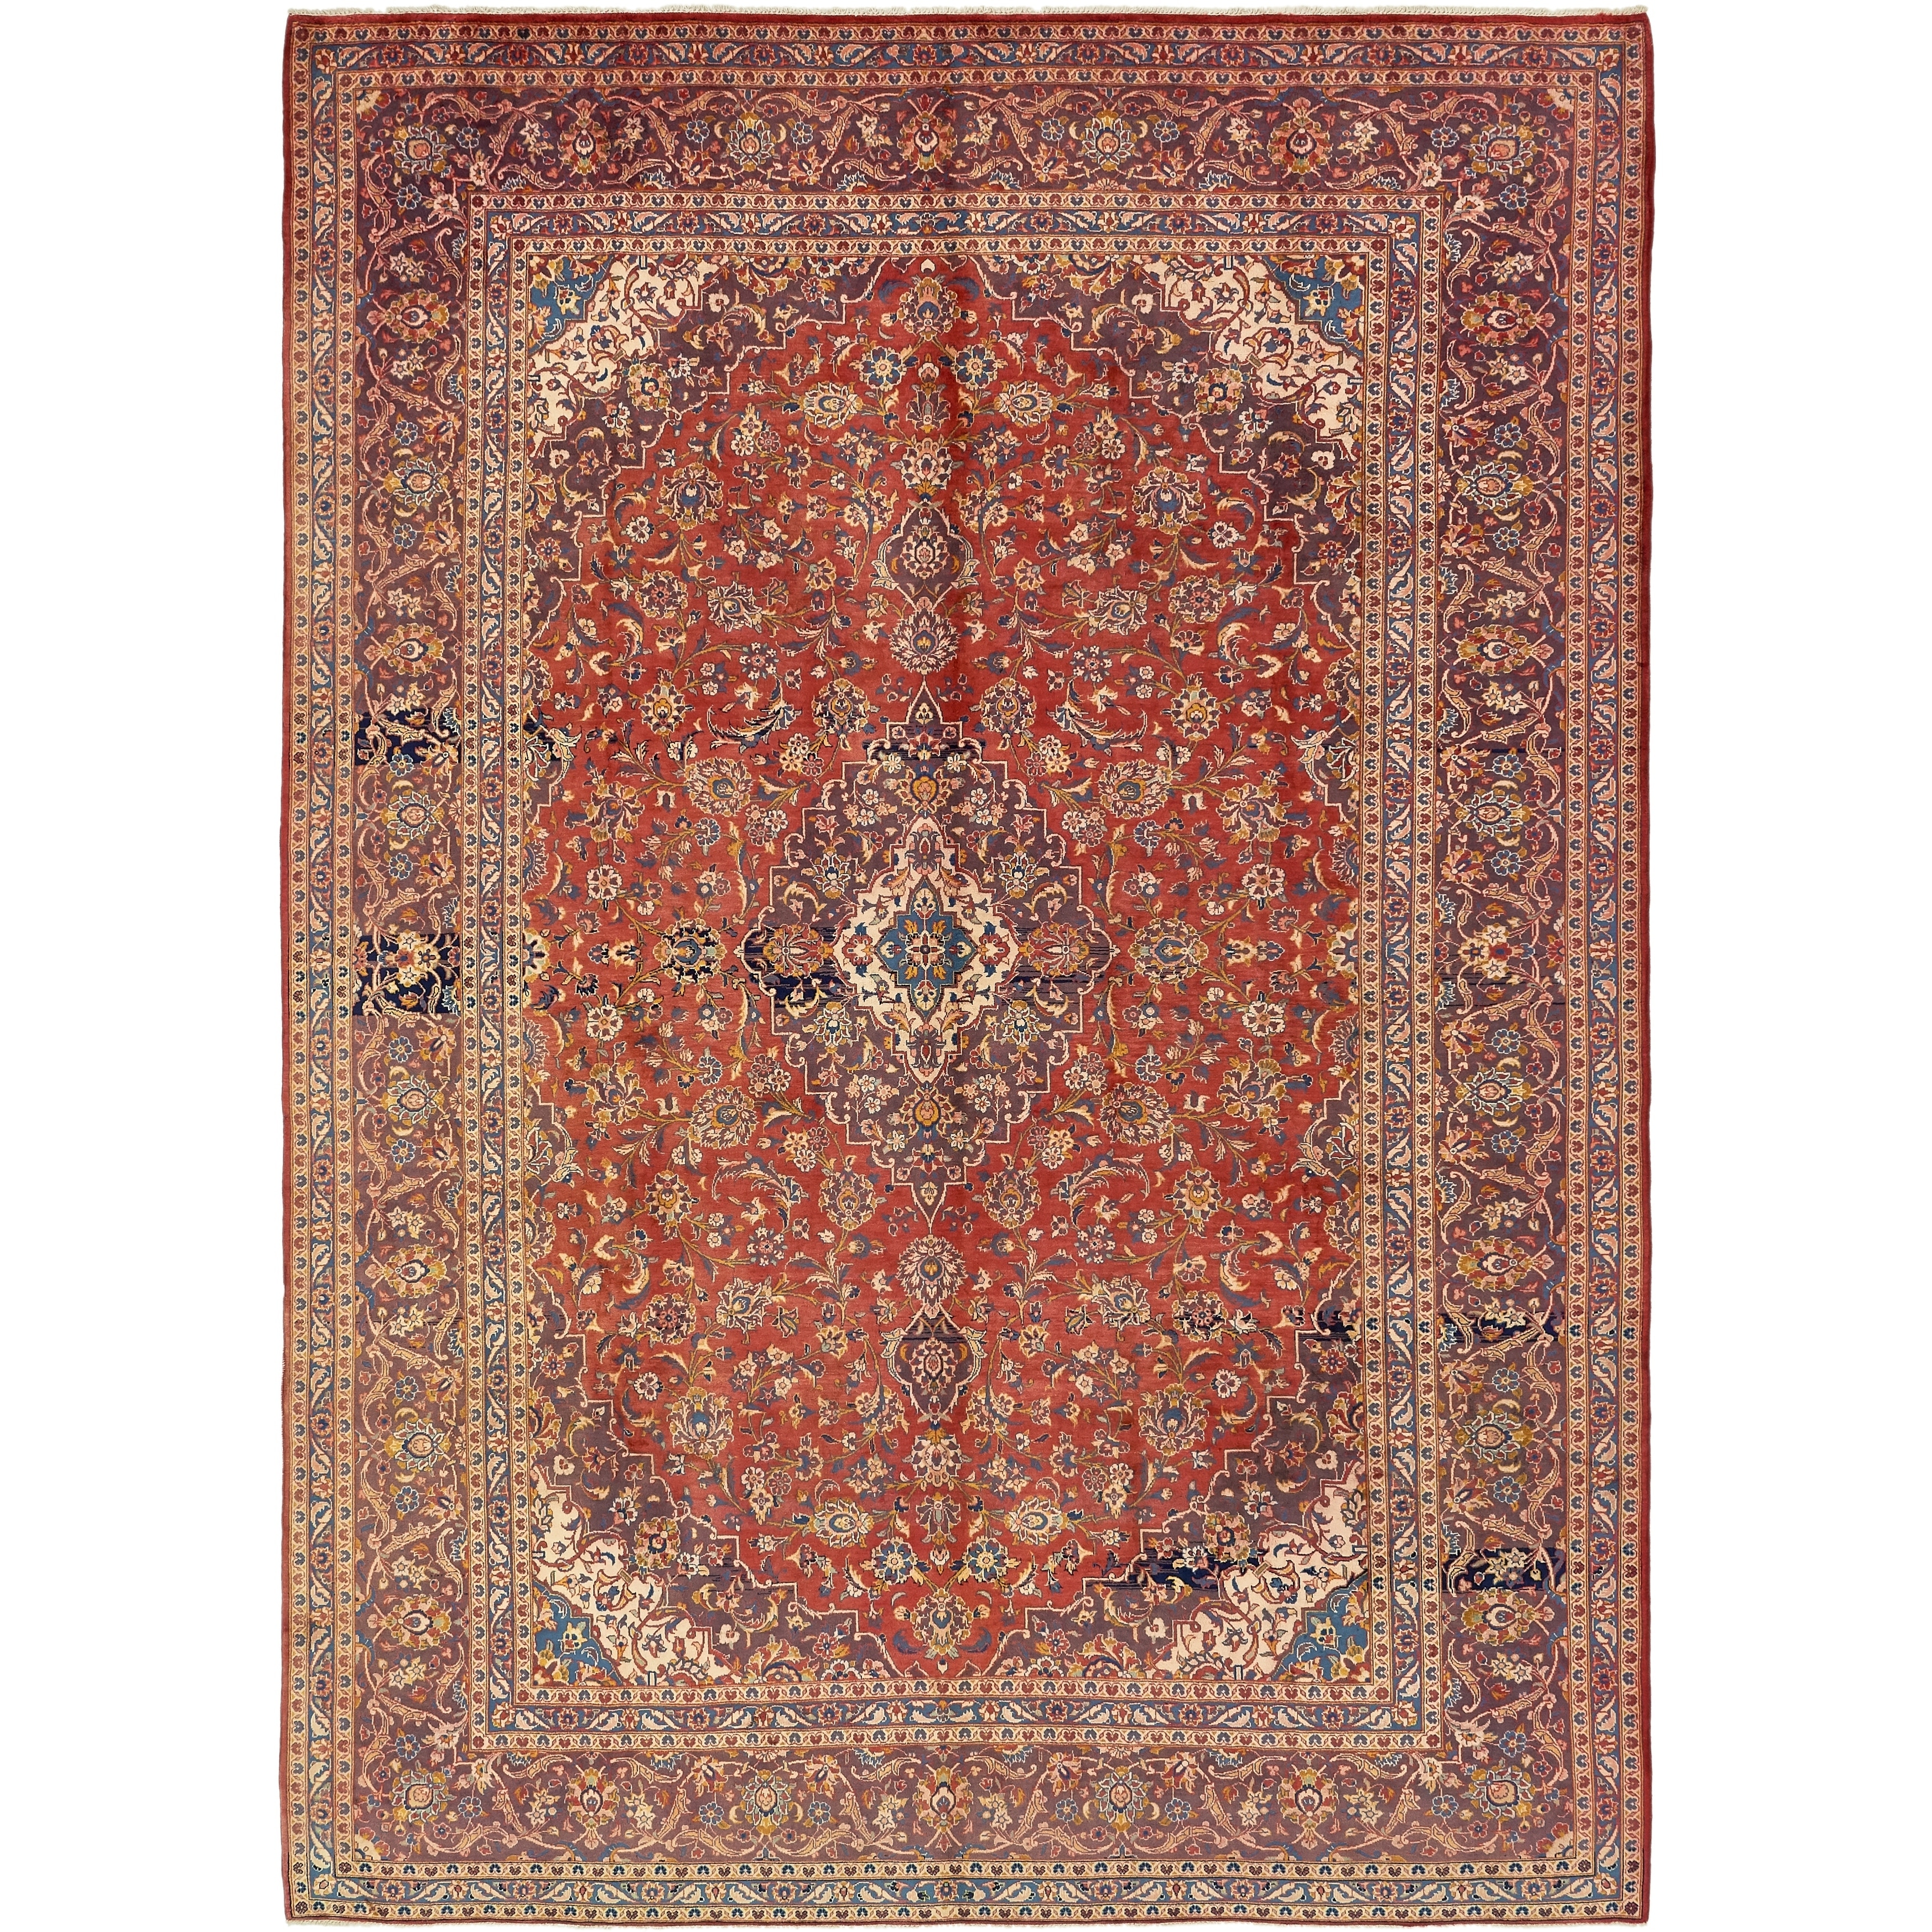 Hand Knotted Kashan Antique Wool Area Rug - 9 6 x 13 5 (Red - 9 6 x 13 5)